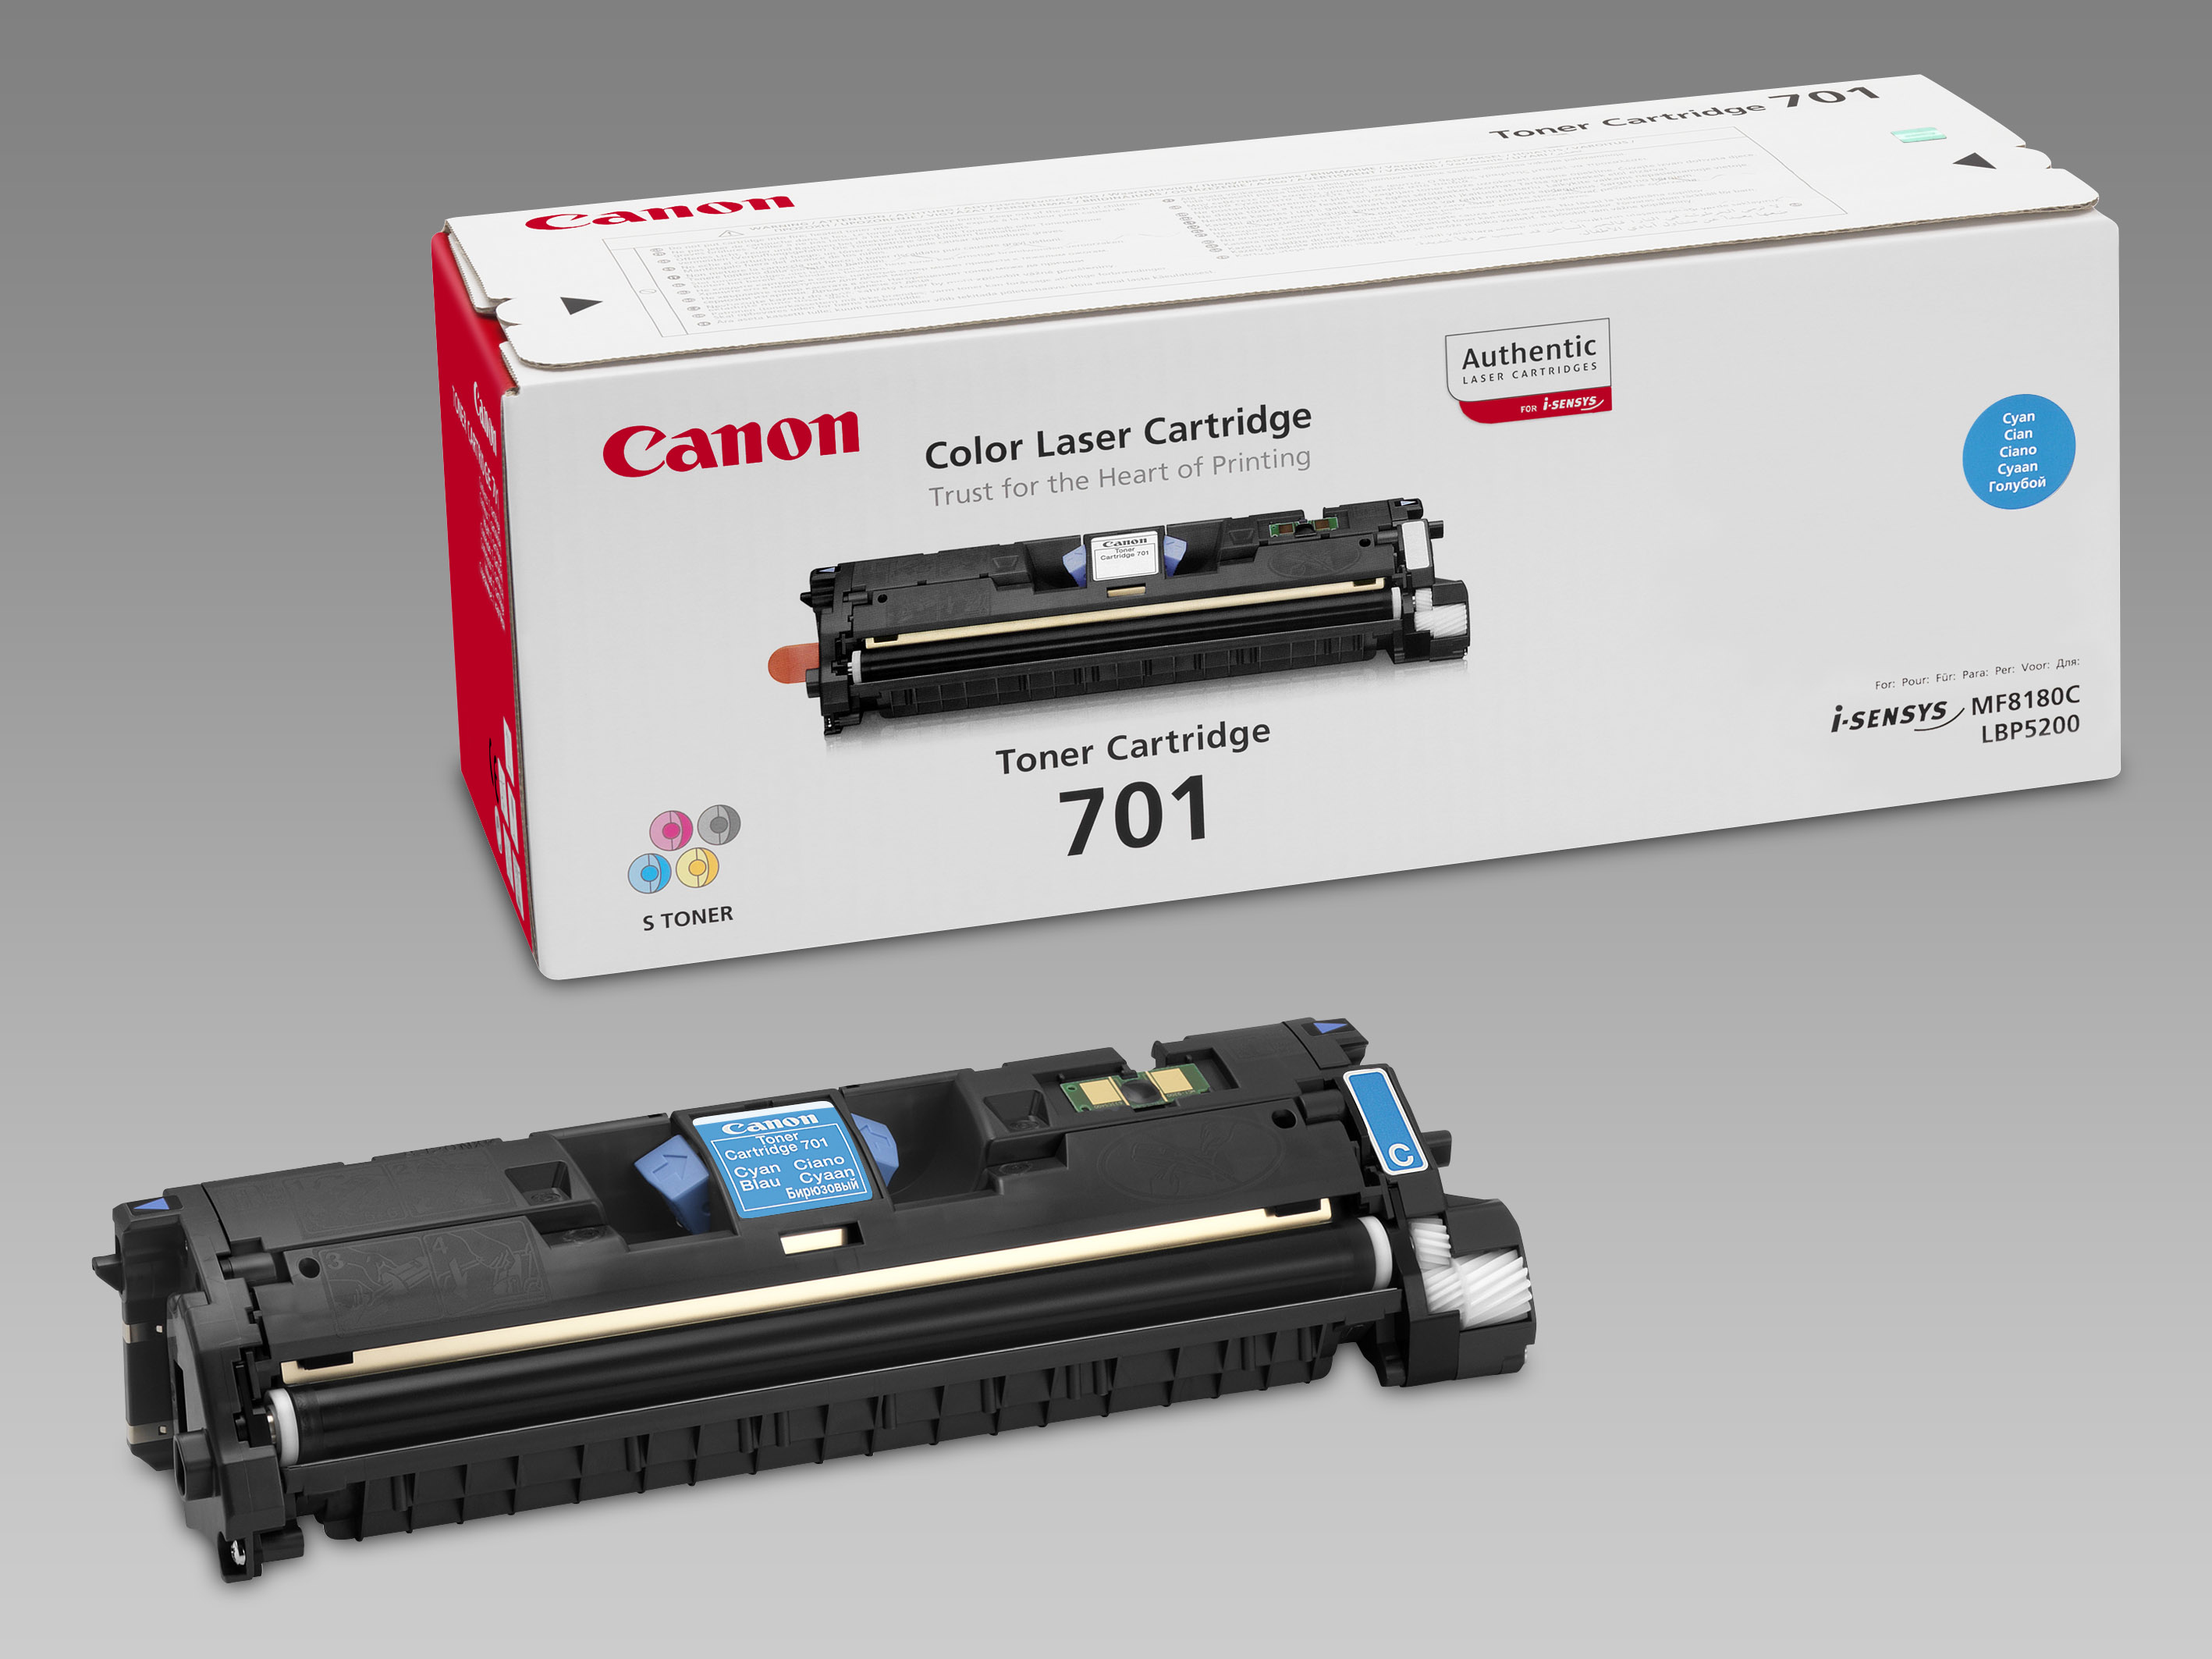 Remanufactured Canon 9286A003AA Toner Cartridge Cyan 9286A003AA - rem01